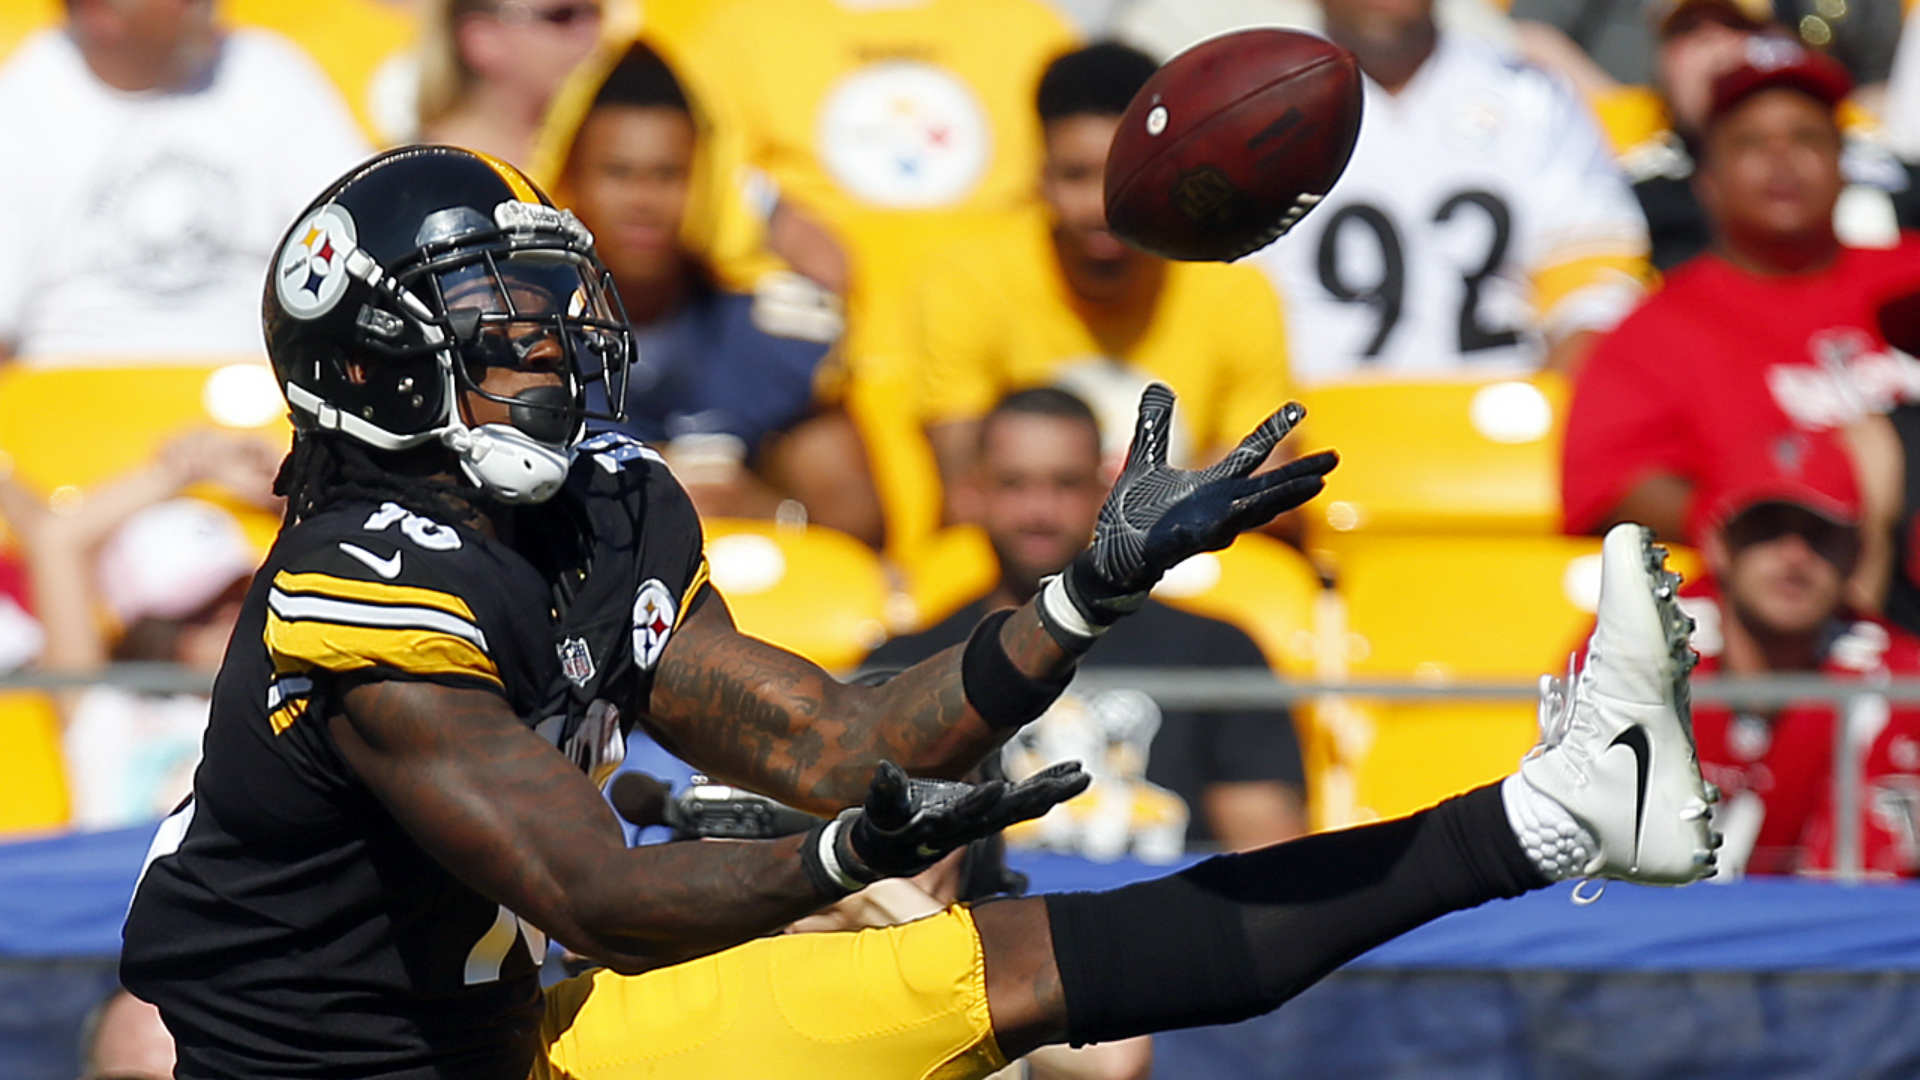 National Football League clears Martavis Bryant for regular season games and practice